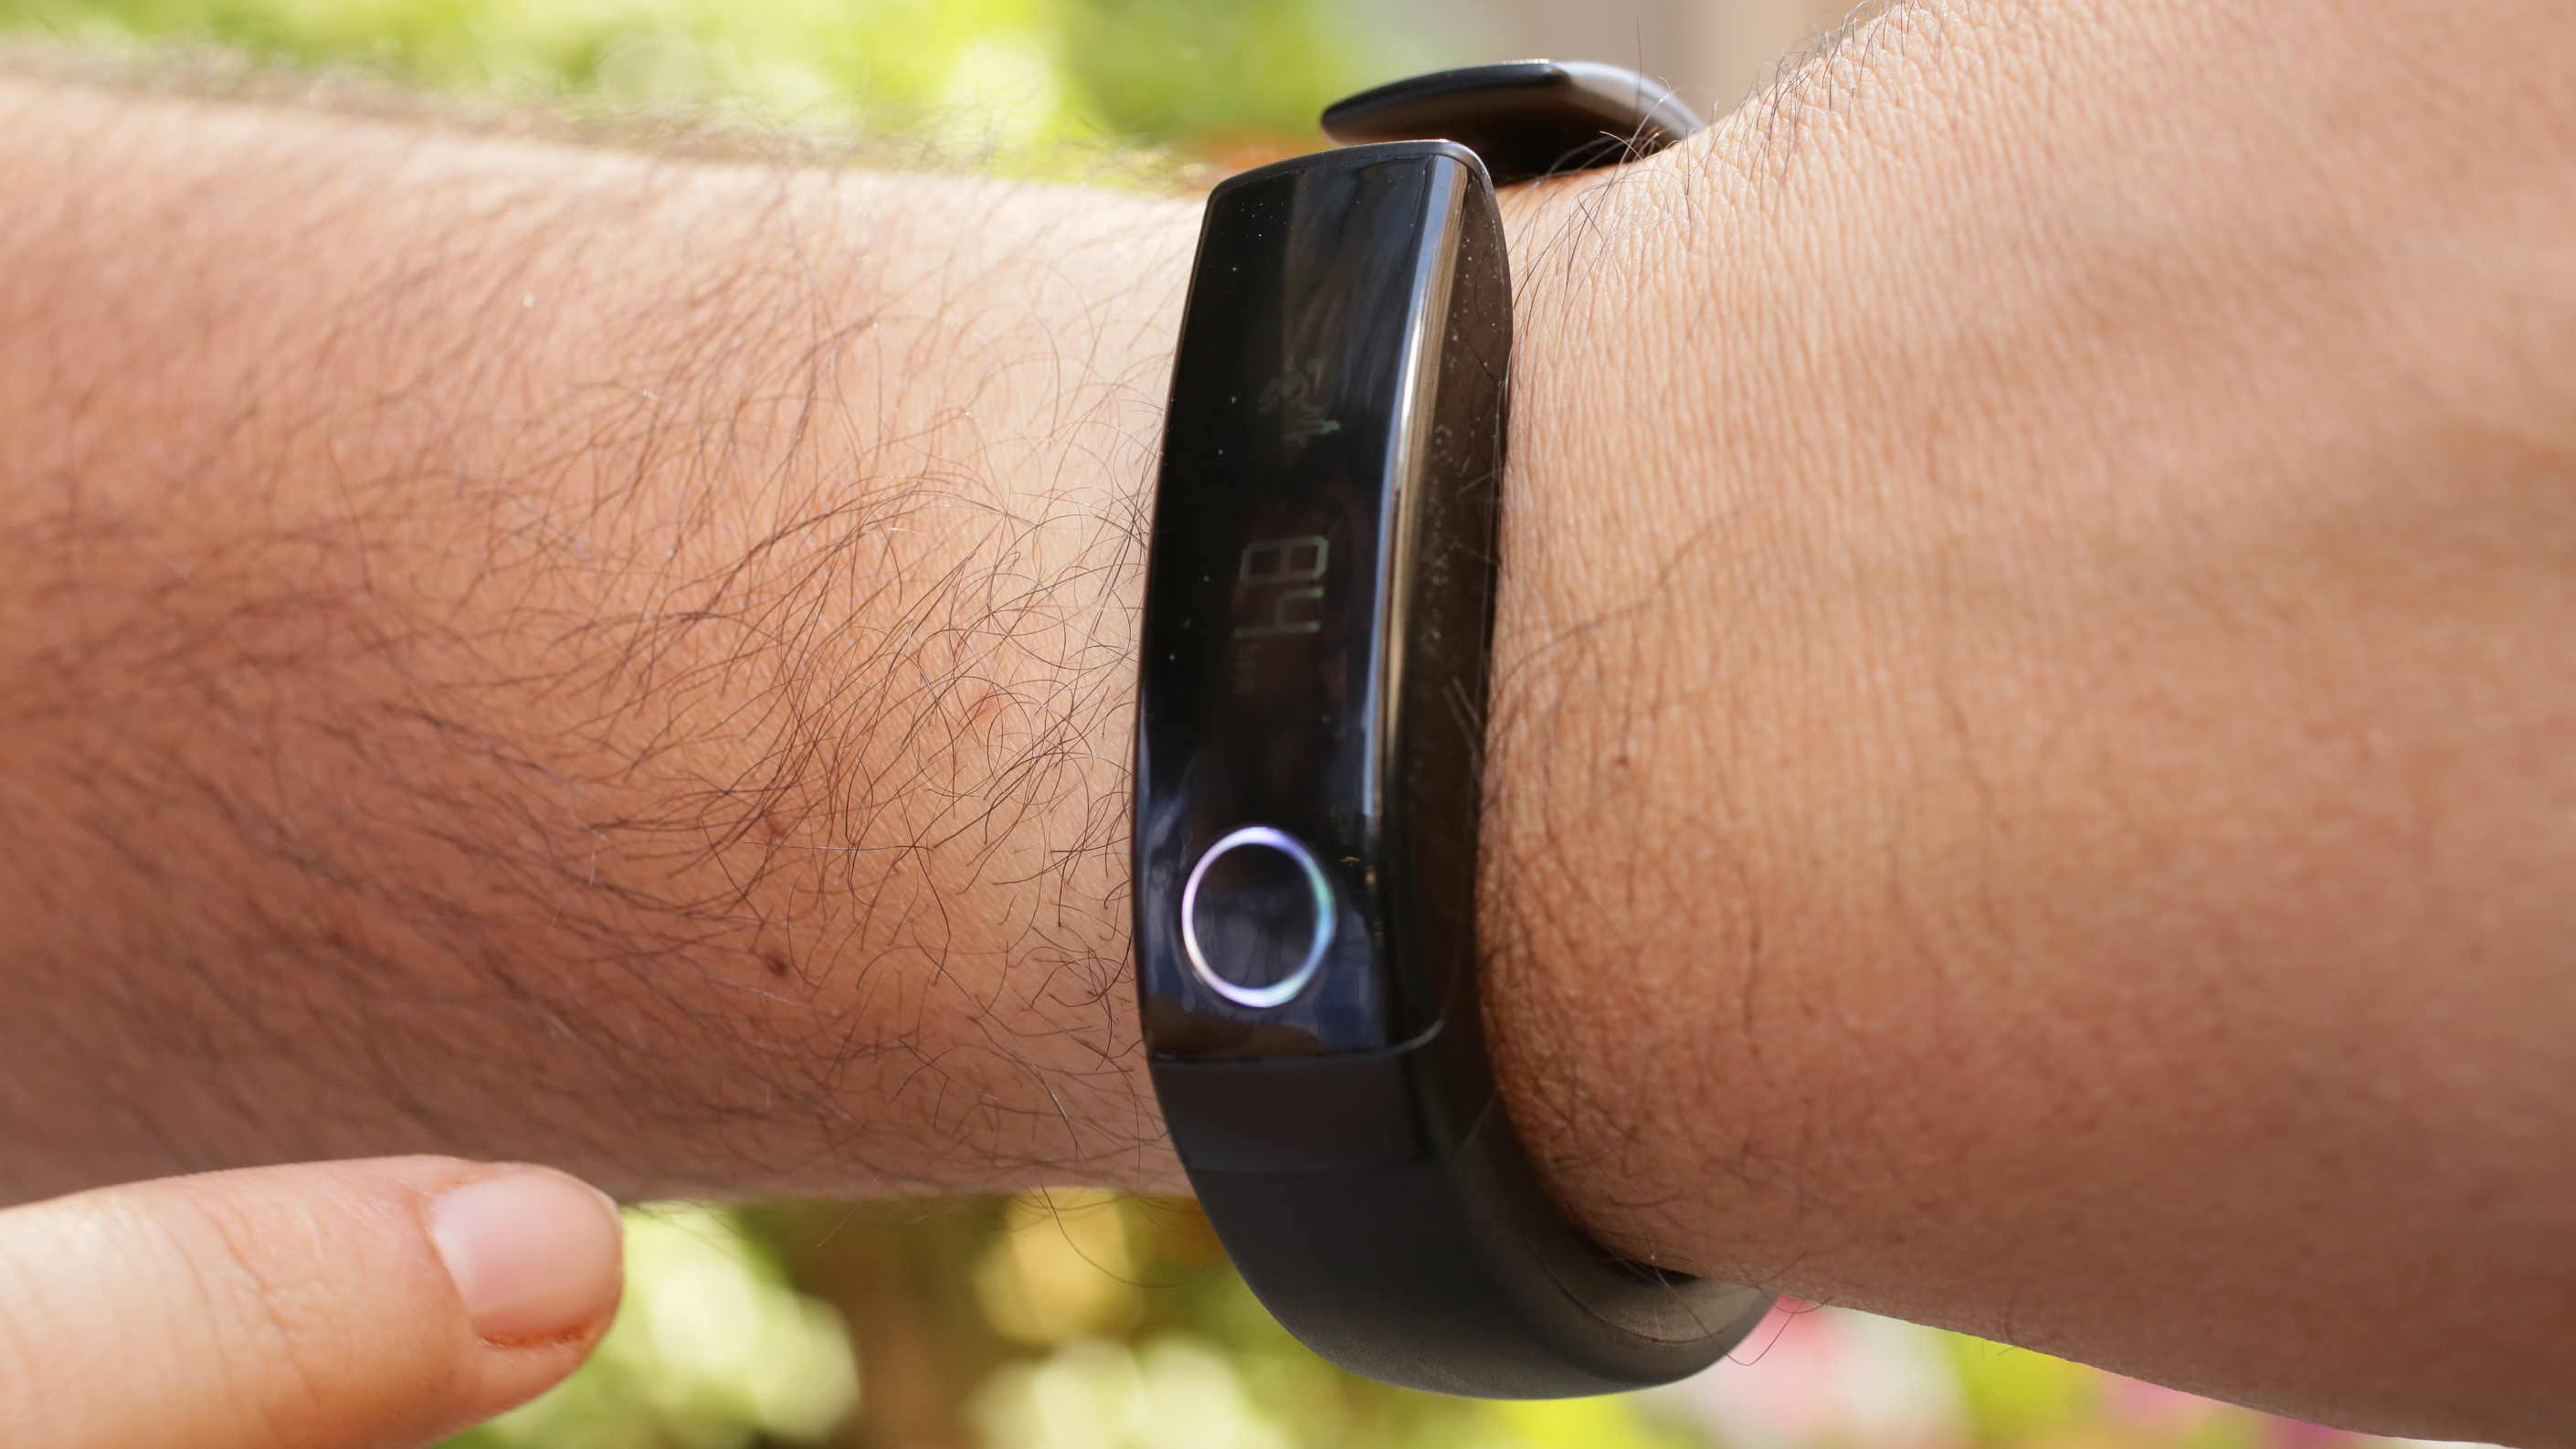 lg-lifeband-touch-product-photos33.jpg